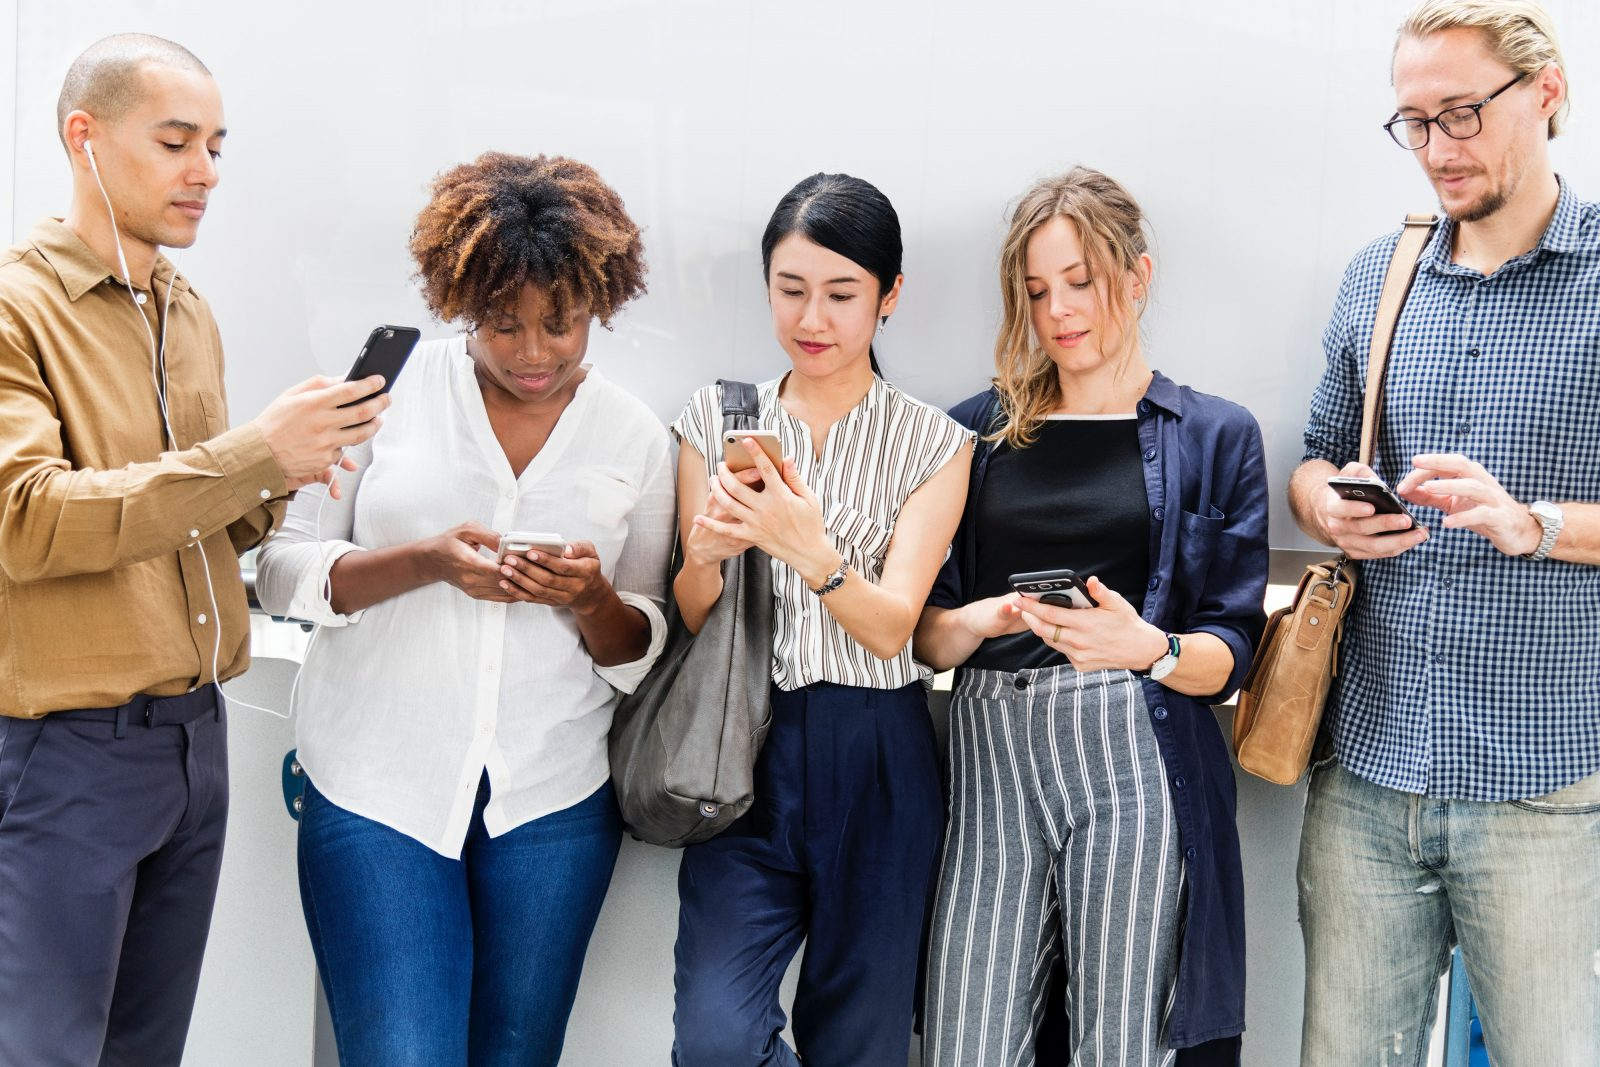 A group of men and women checking their cellphones